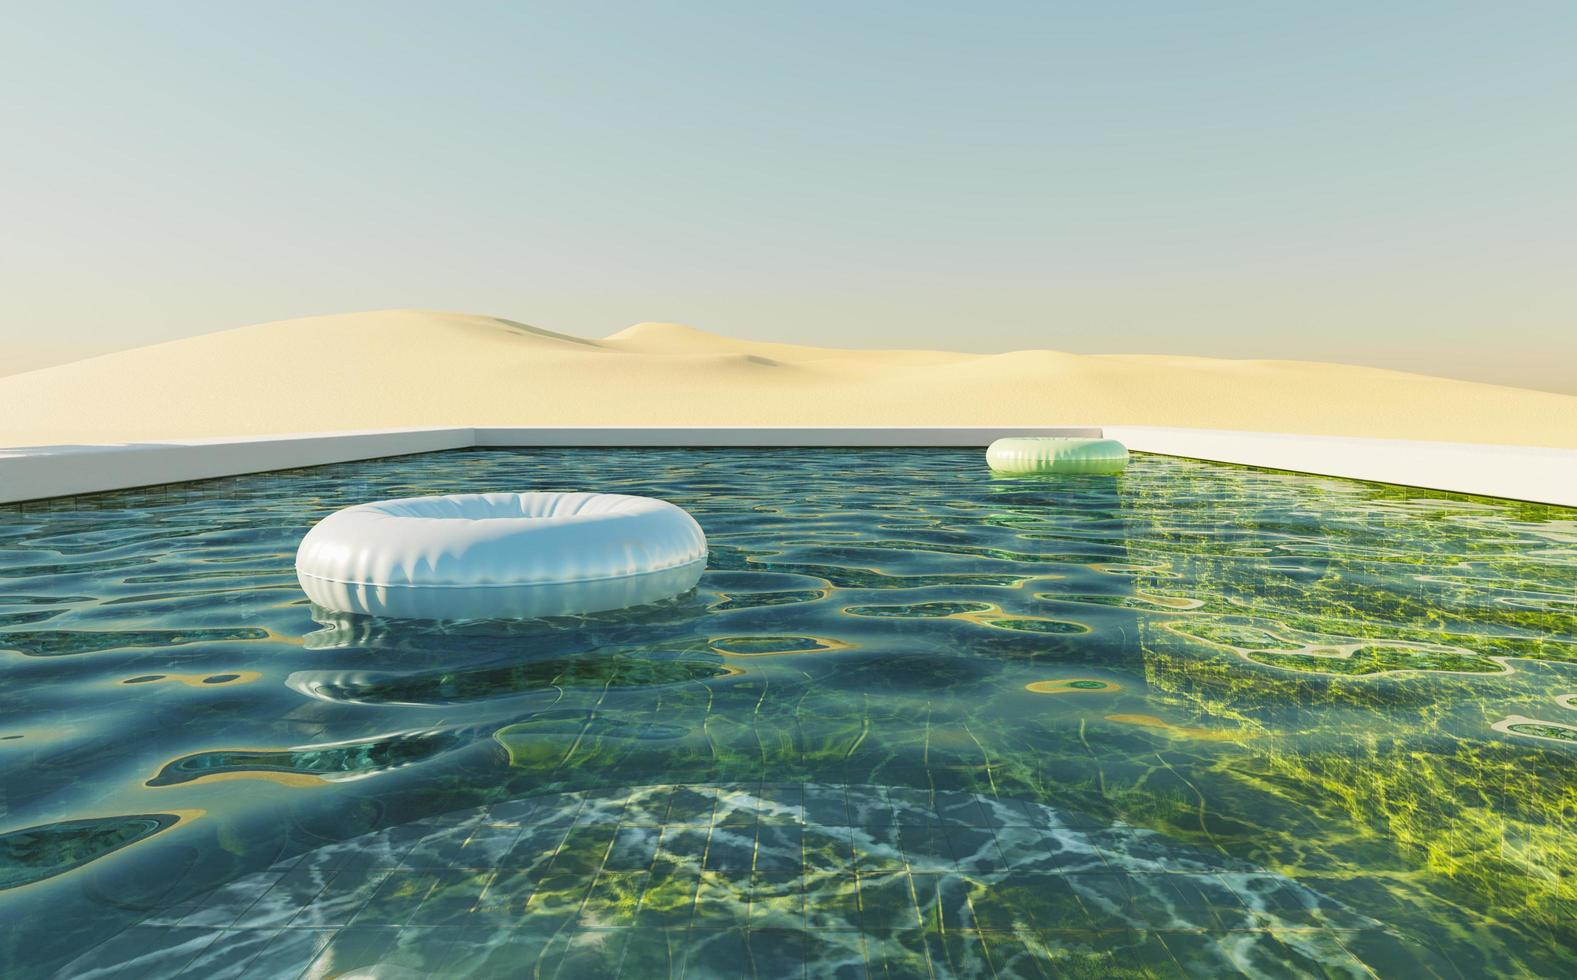 Green background pool in a dune desert with clear sky and floats in the water, 3d render photo